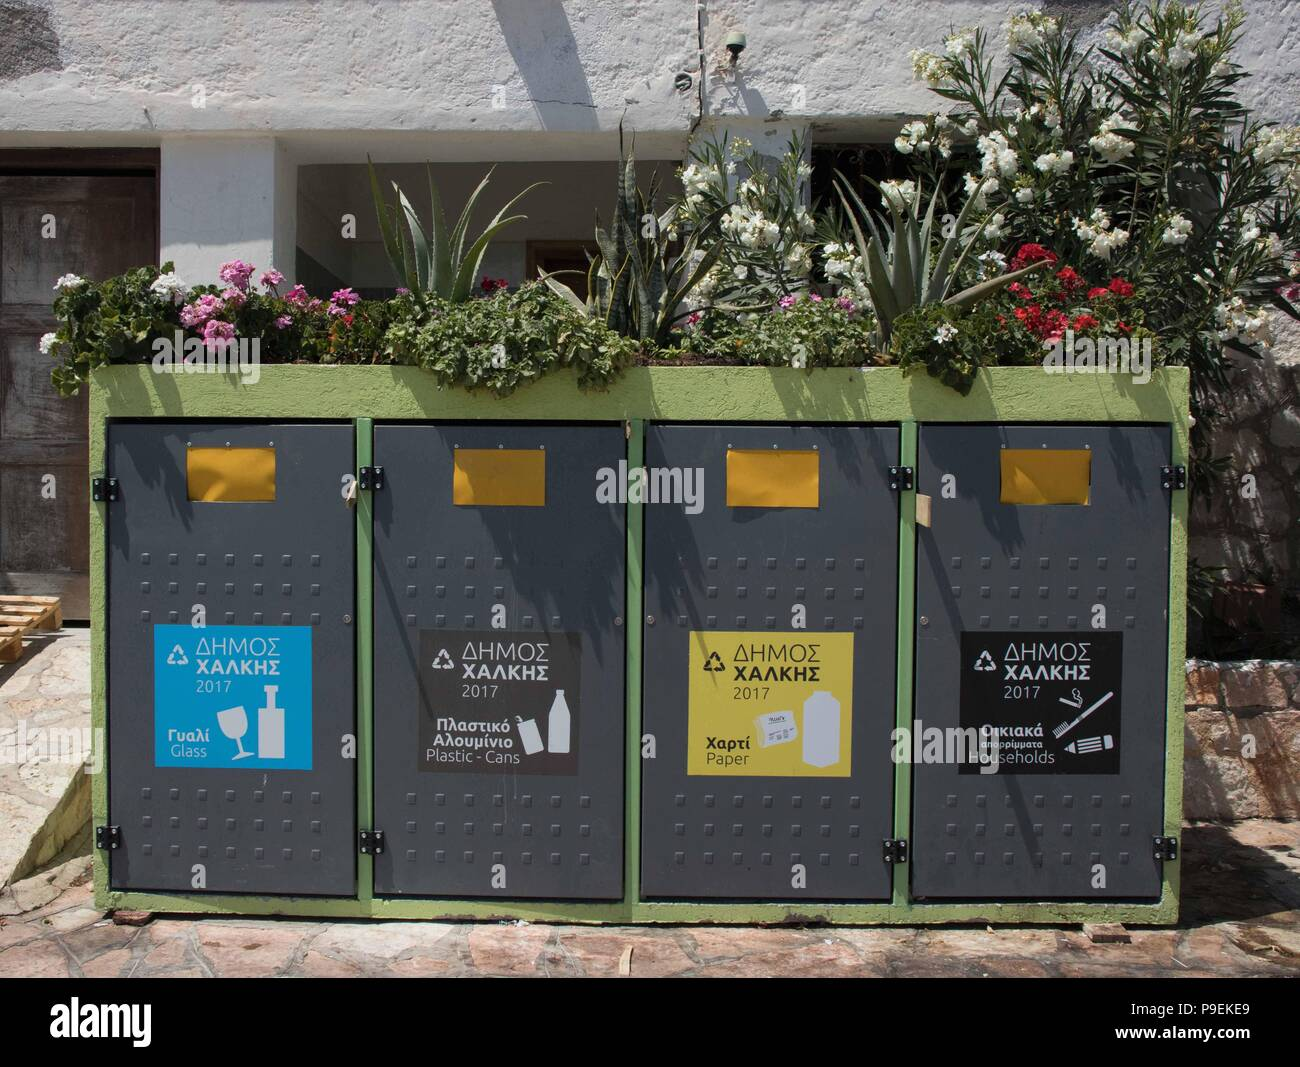 At last, recycling comes to Halki, near Rhodes, Dodecanese, Greece! - Stock Image